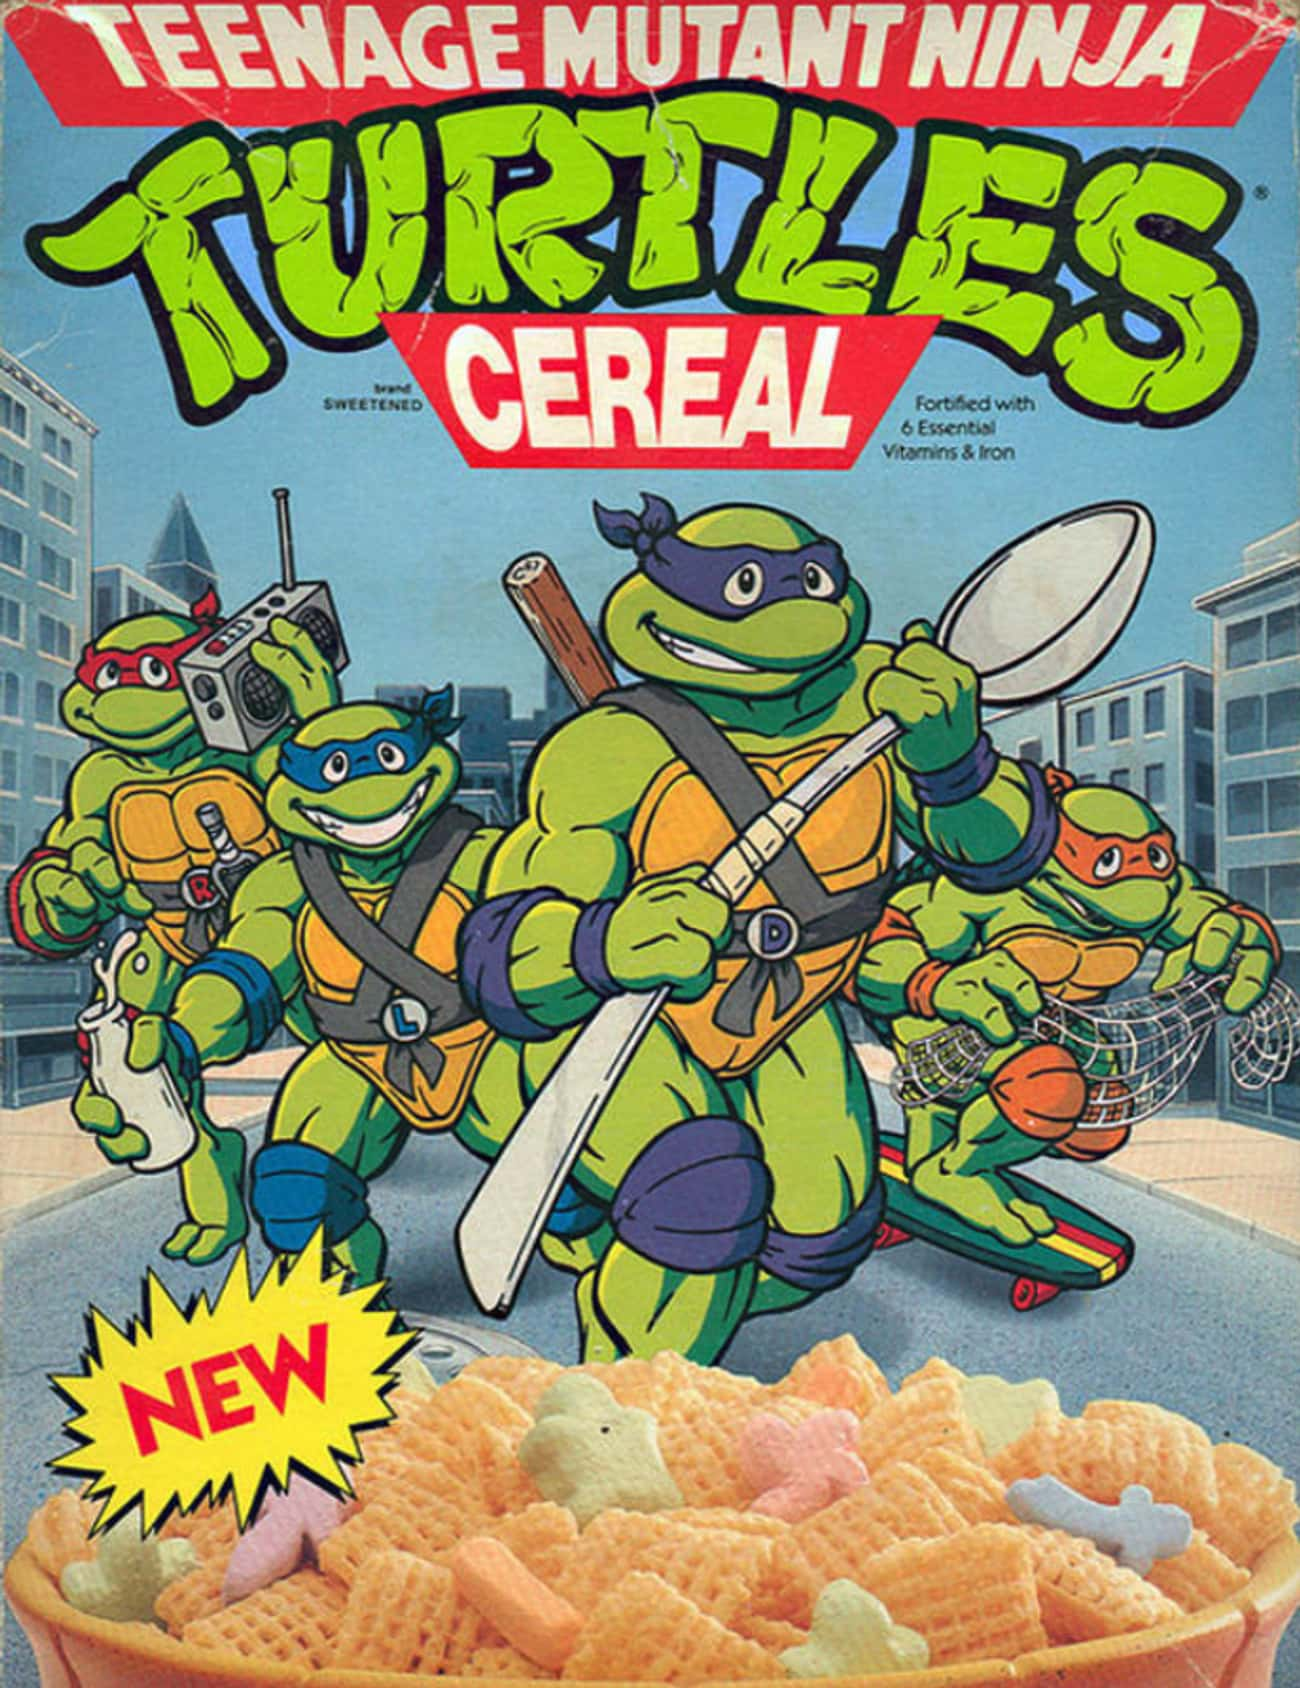 Teenage Mutant Ninja Turtles C is listed (or ranked) 4 on the list Discontinued '90s Cereals You Totally Forgot About